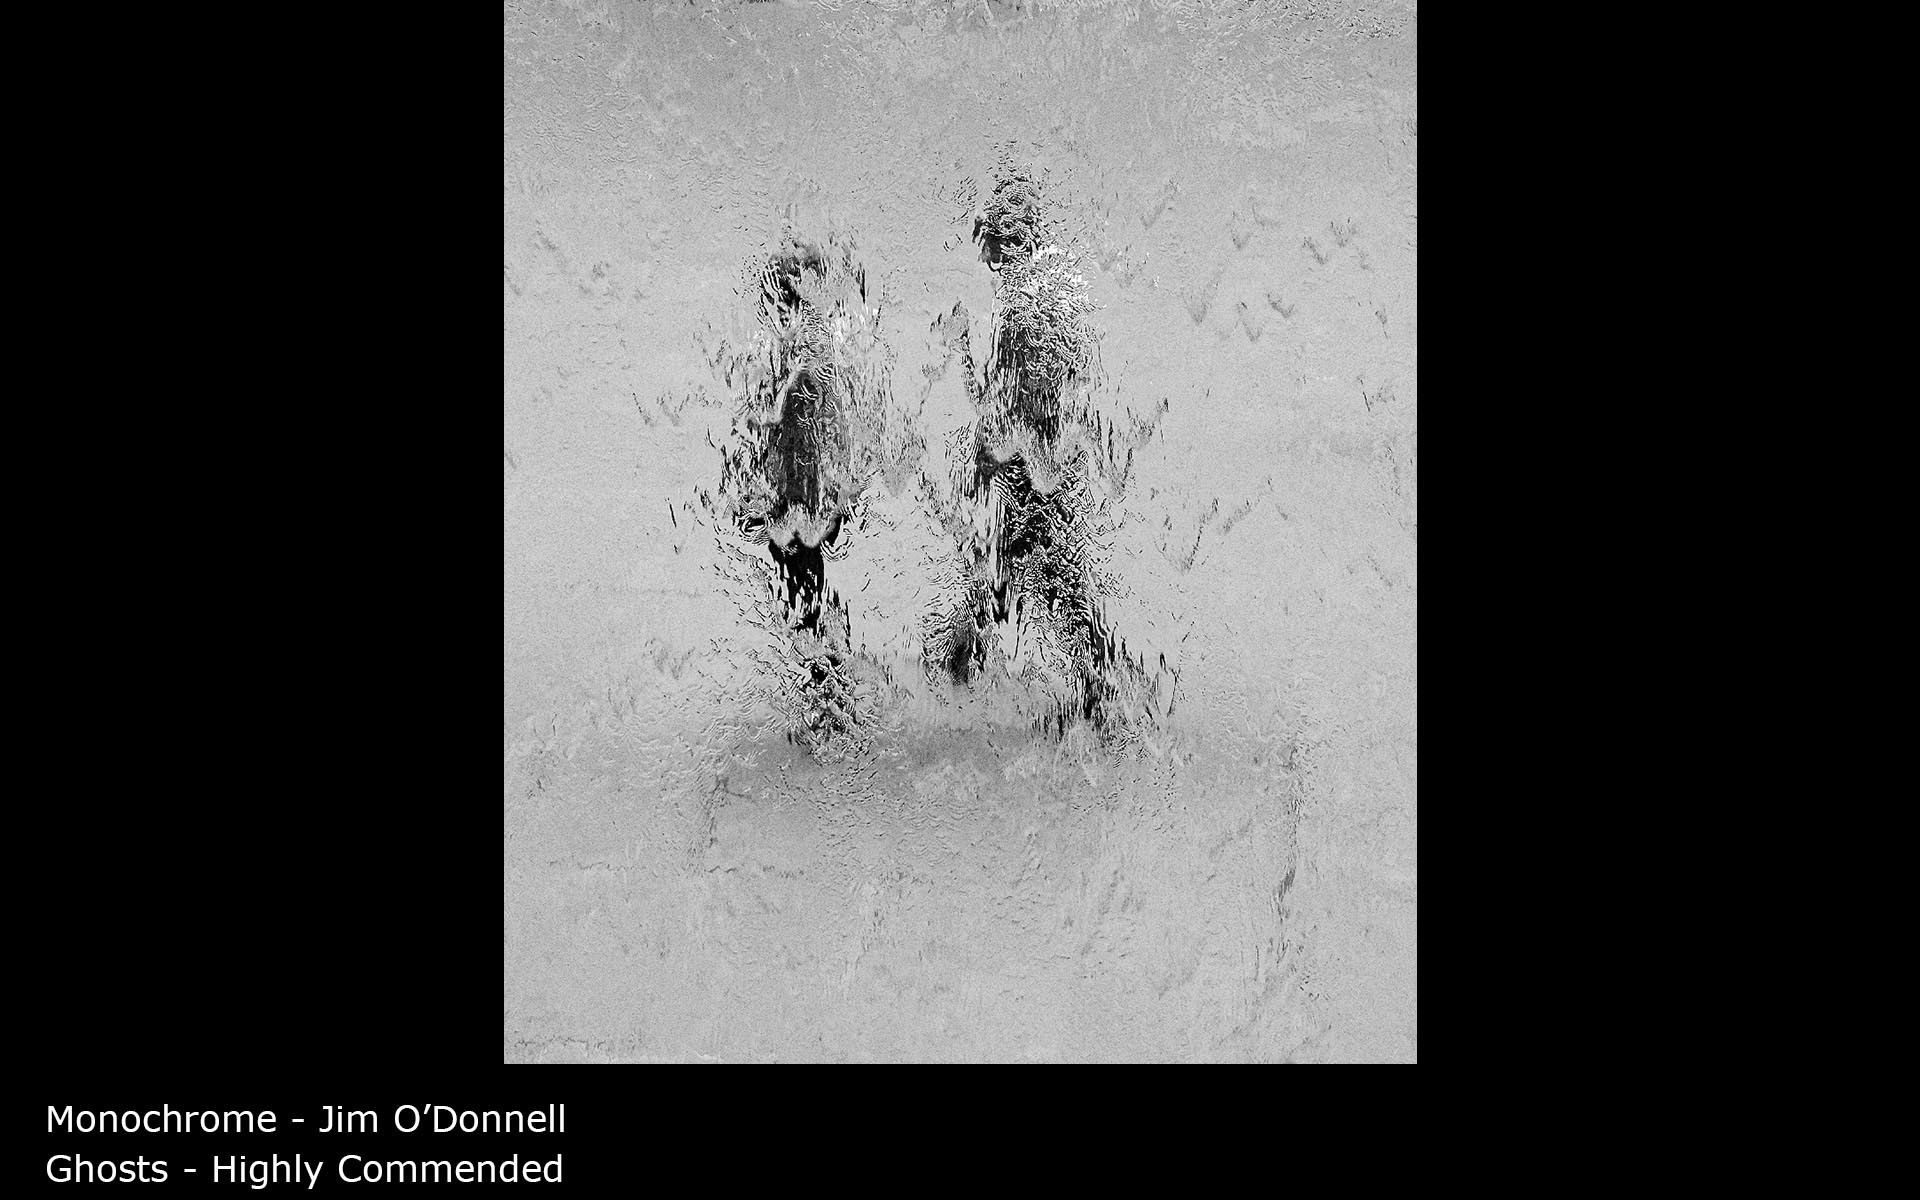 Ghosts - Jim O'Donnell